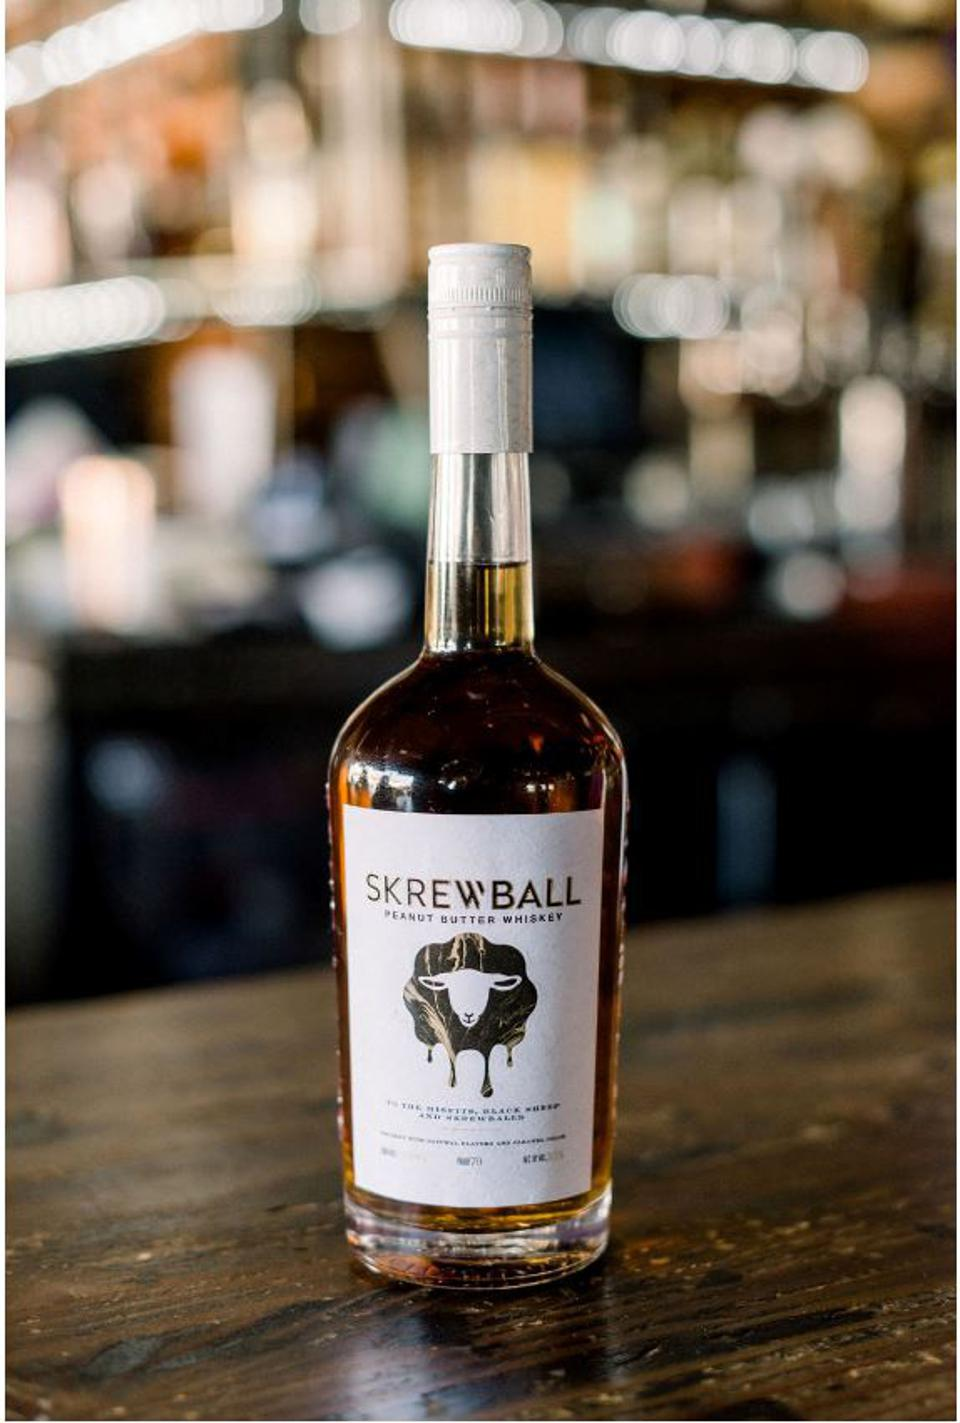 The label of Skrewball highlights their focus on being different.